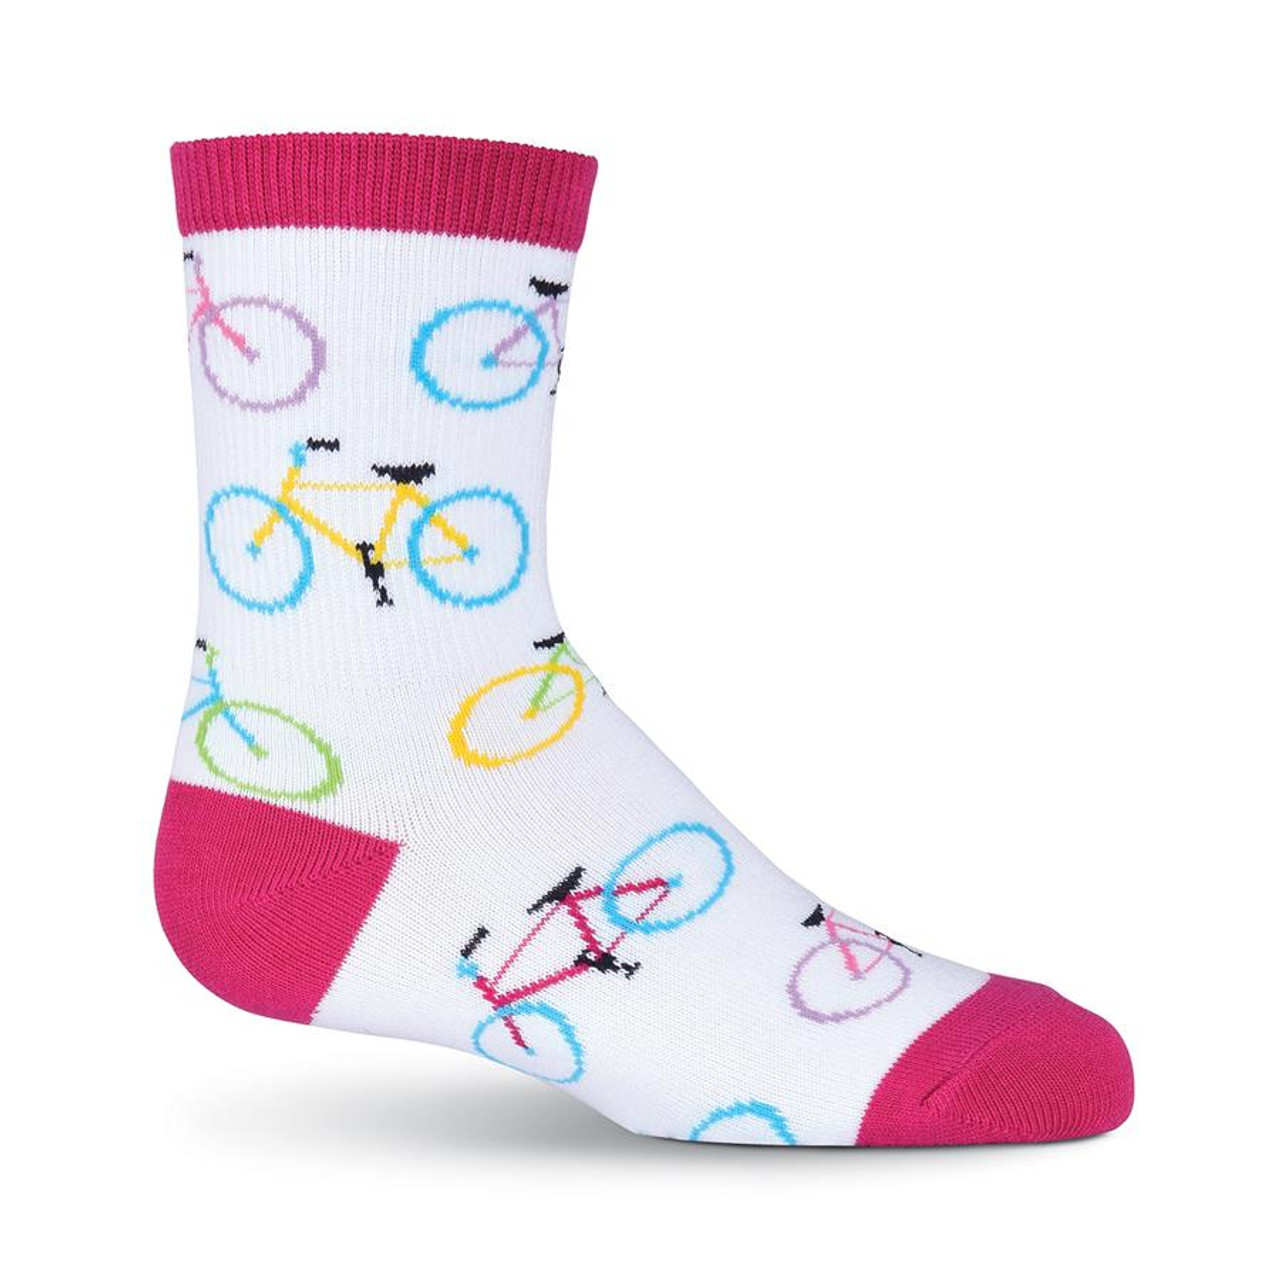 Bicycle Print Socks for Children - Bright Colored and Fun Cycle Sock